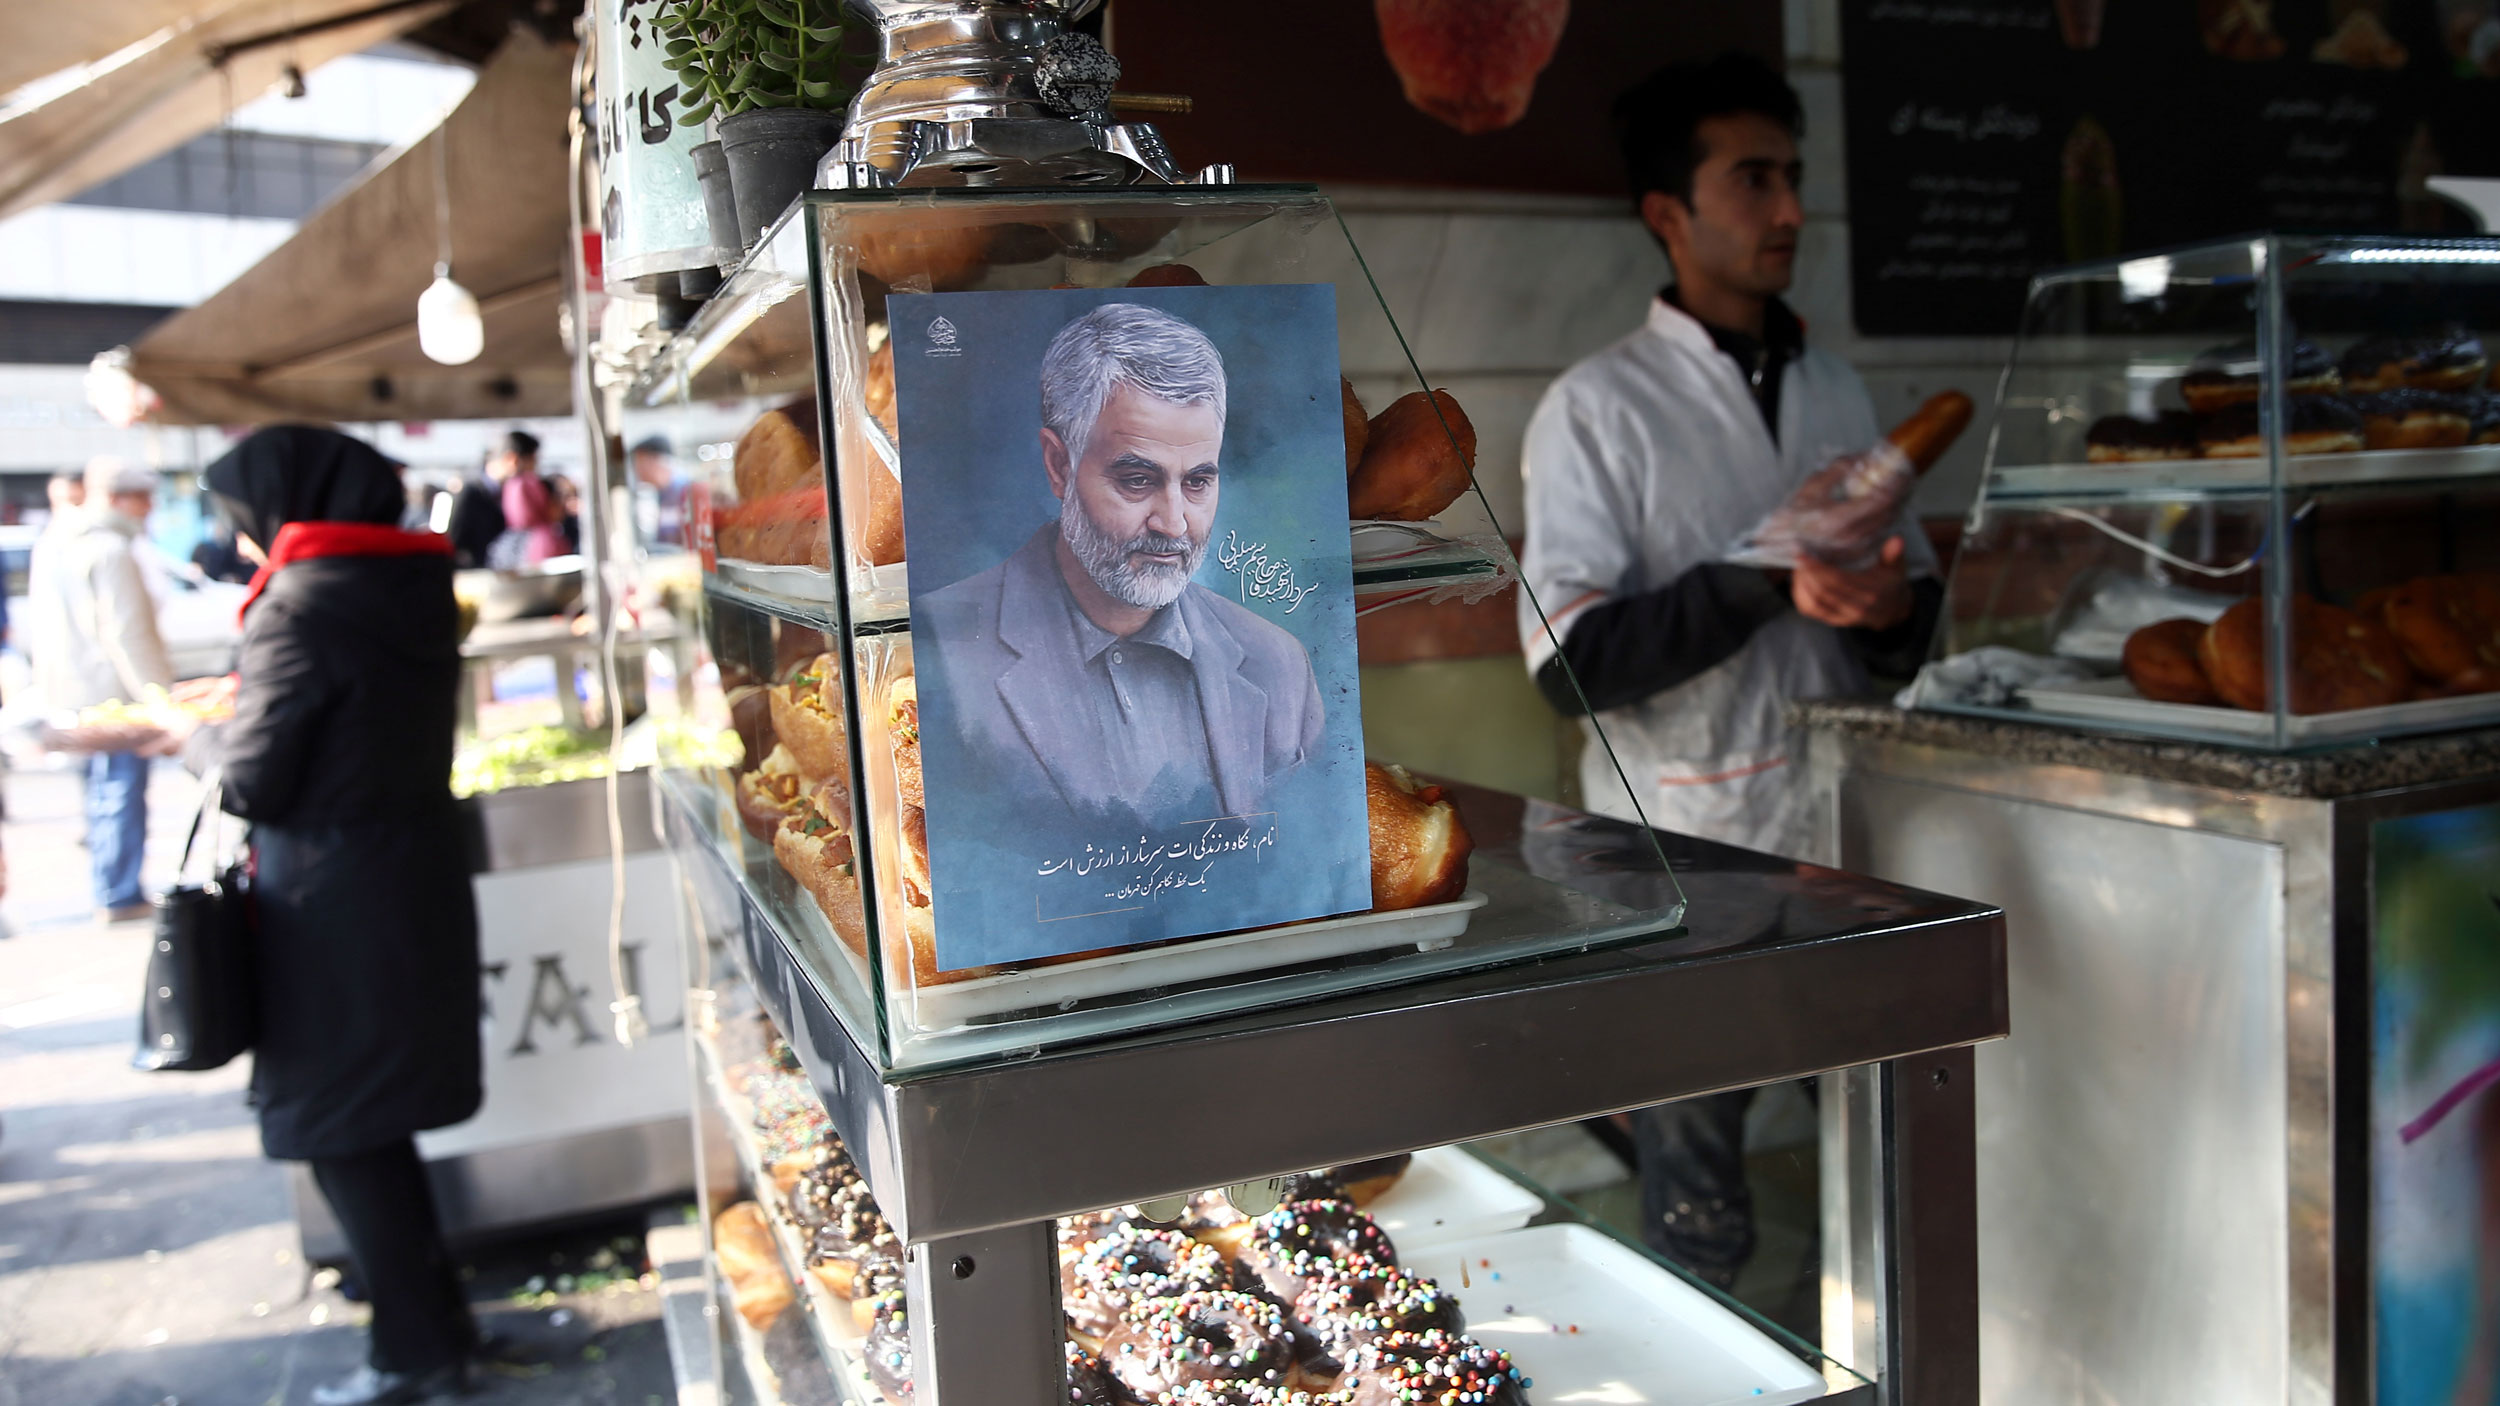 A portrait painint of of Iranian Maj. Gen. Qasem Soleimani is shown on a glass case in a confectionery shop.